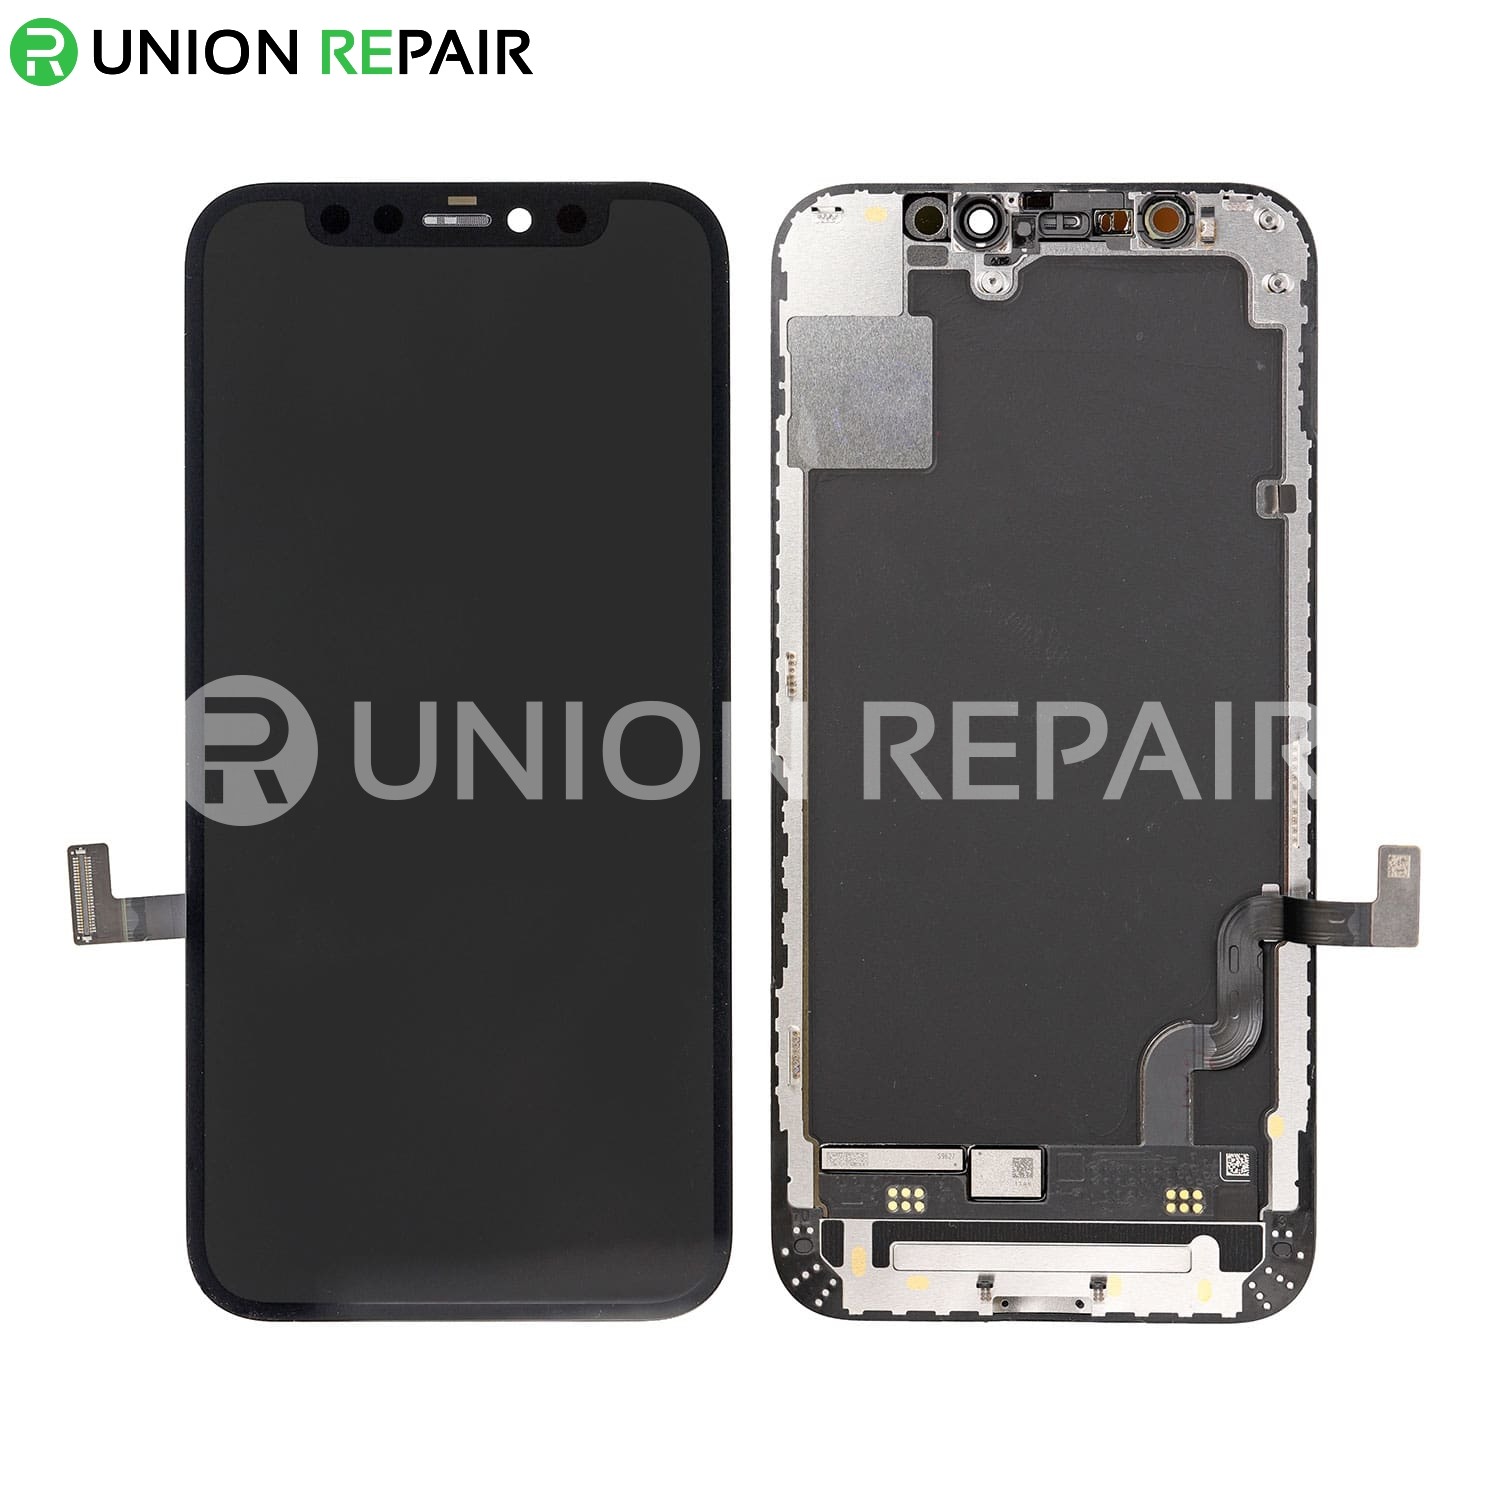 Replacement For iPhone 12 Mini OLED Screen Digitizer Assembly - Black